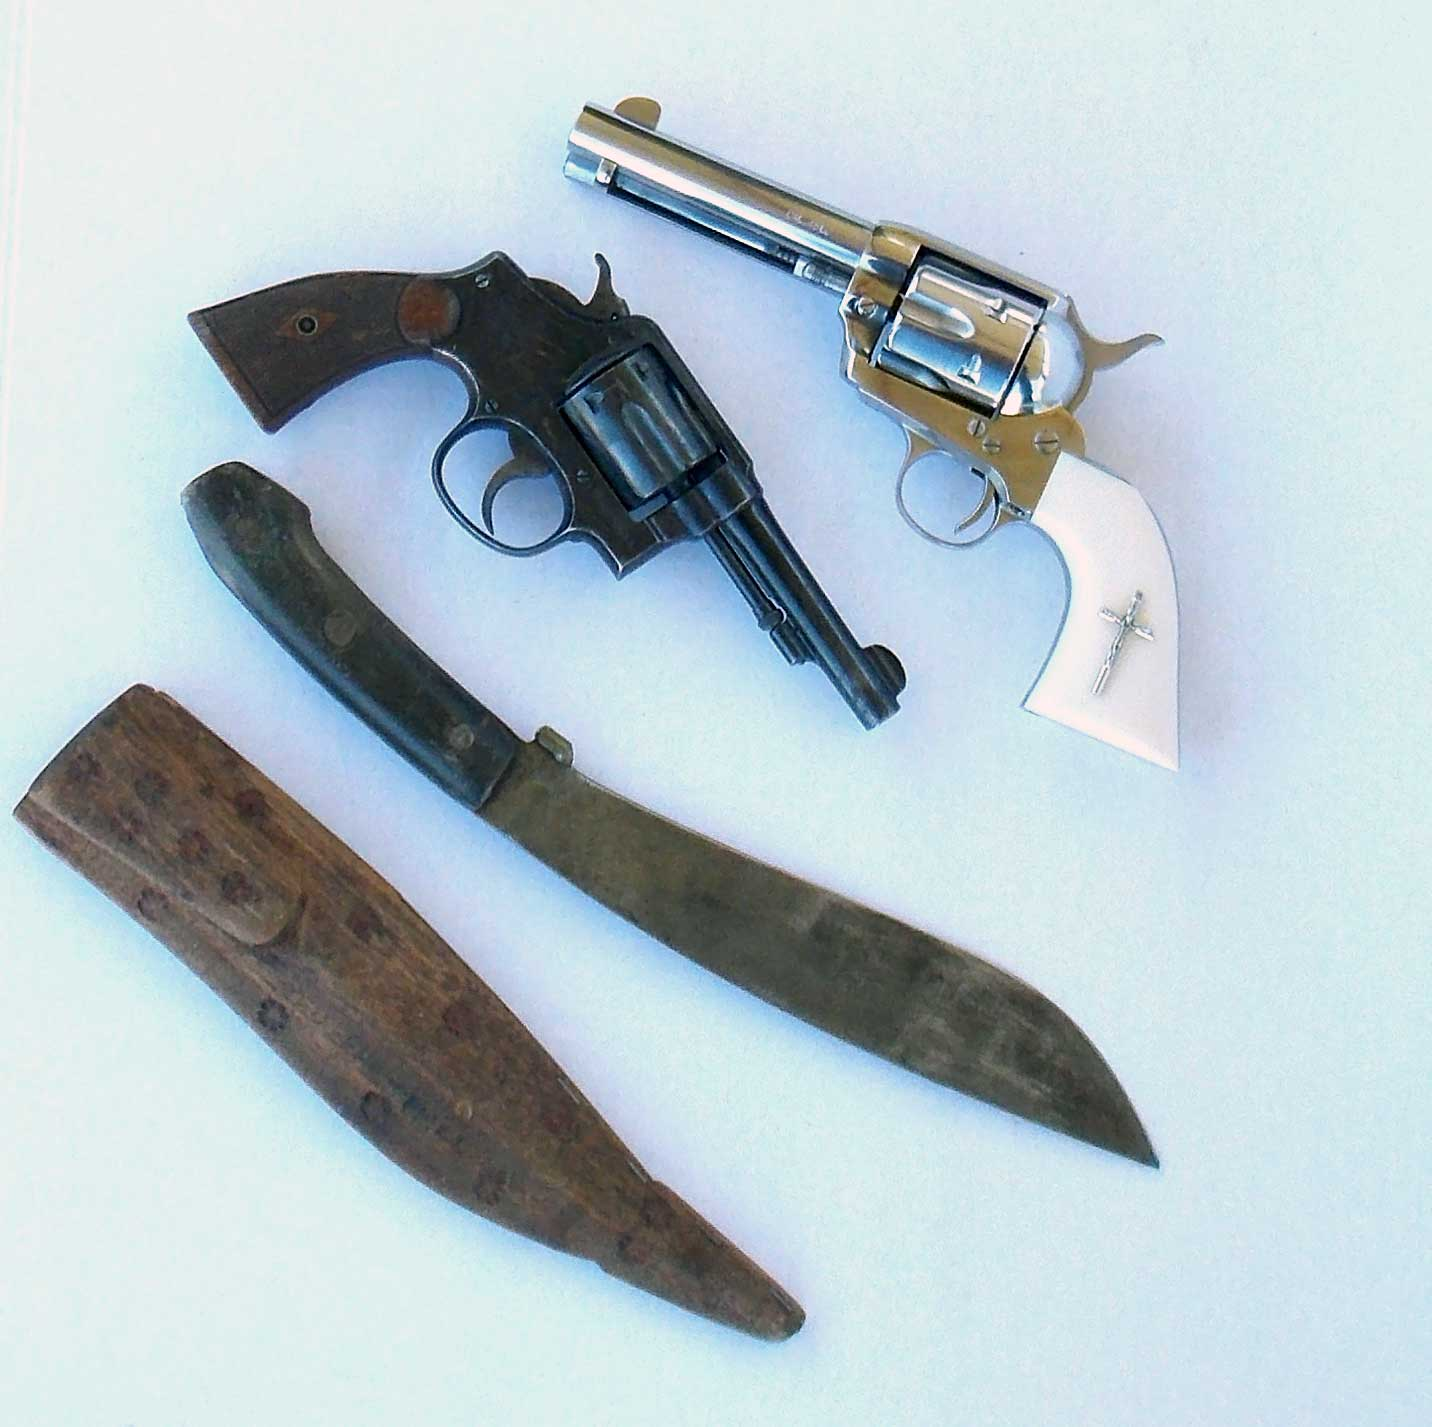 .38 caliber revolvers with a Philippine Bolo